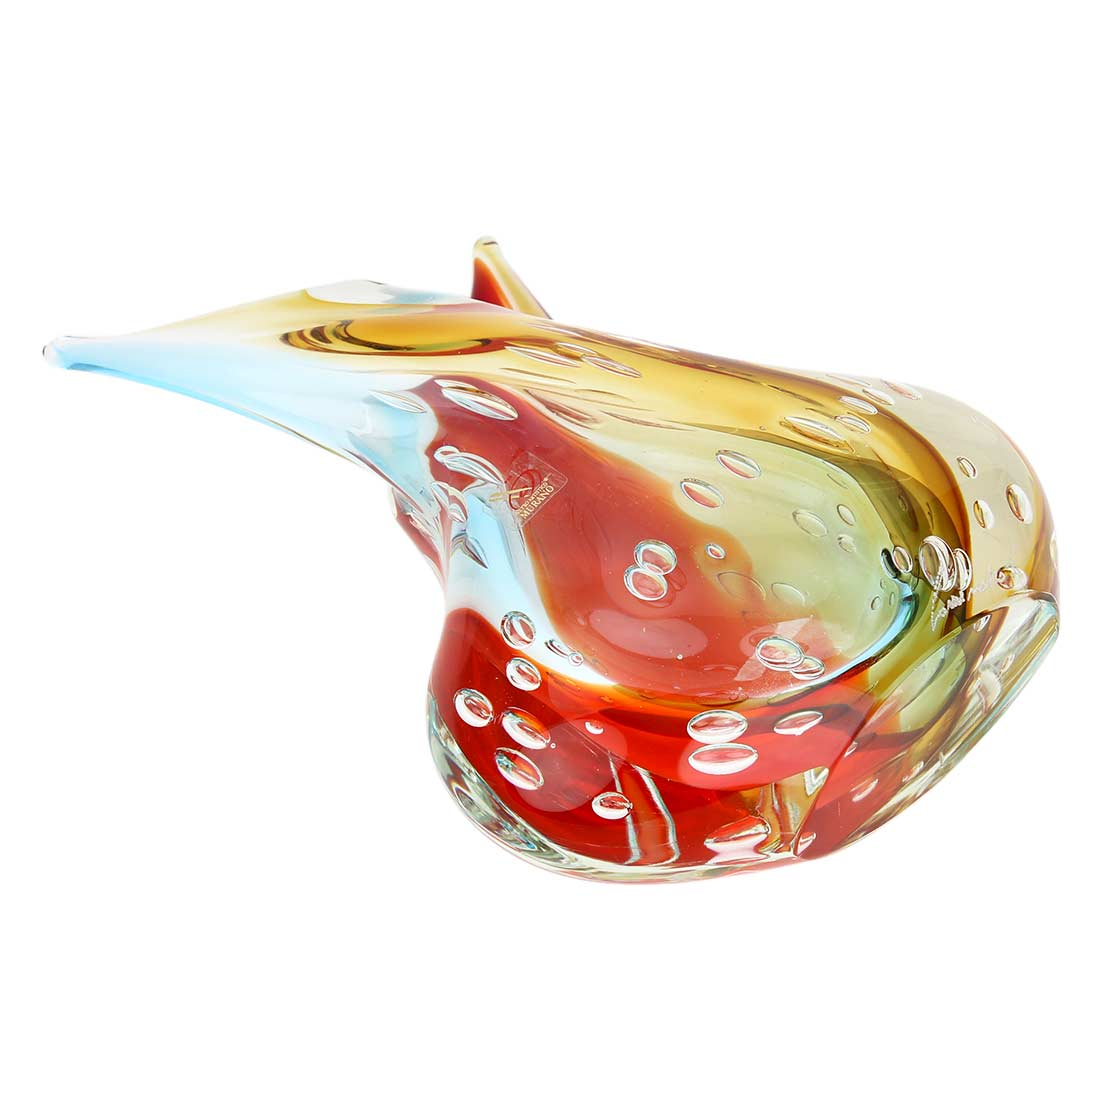 Murano Art Glass Sommerso Leaves Vase - Venetian Sunrise